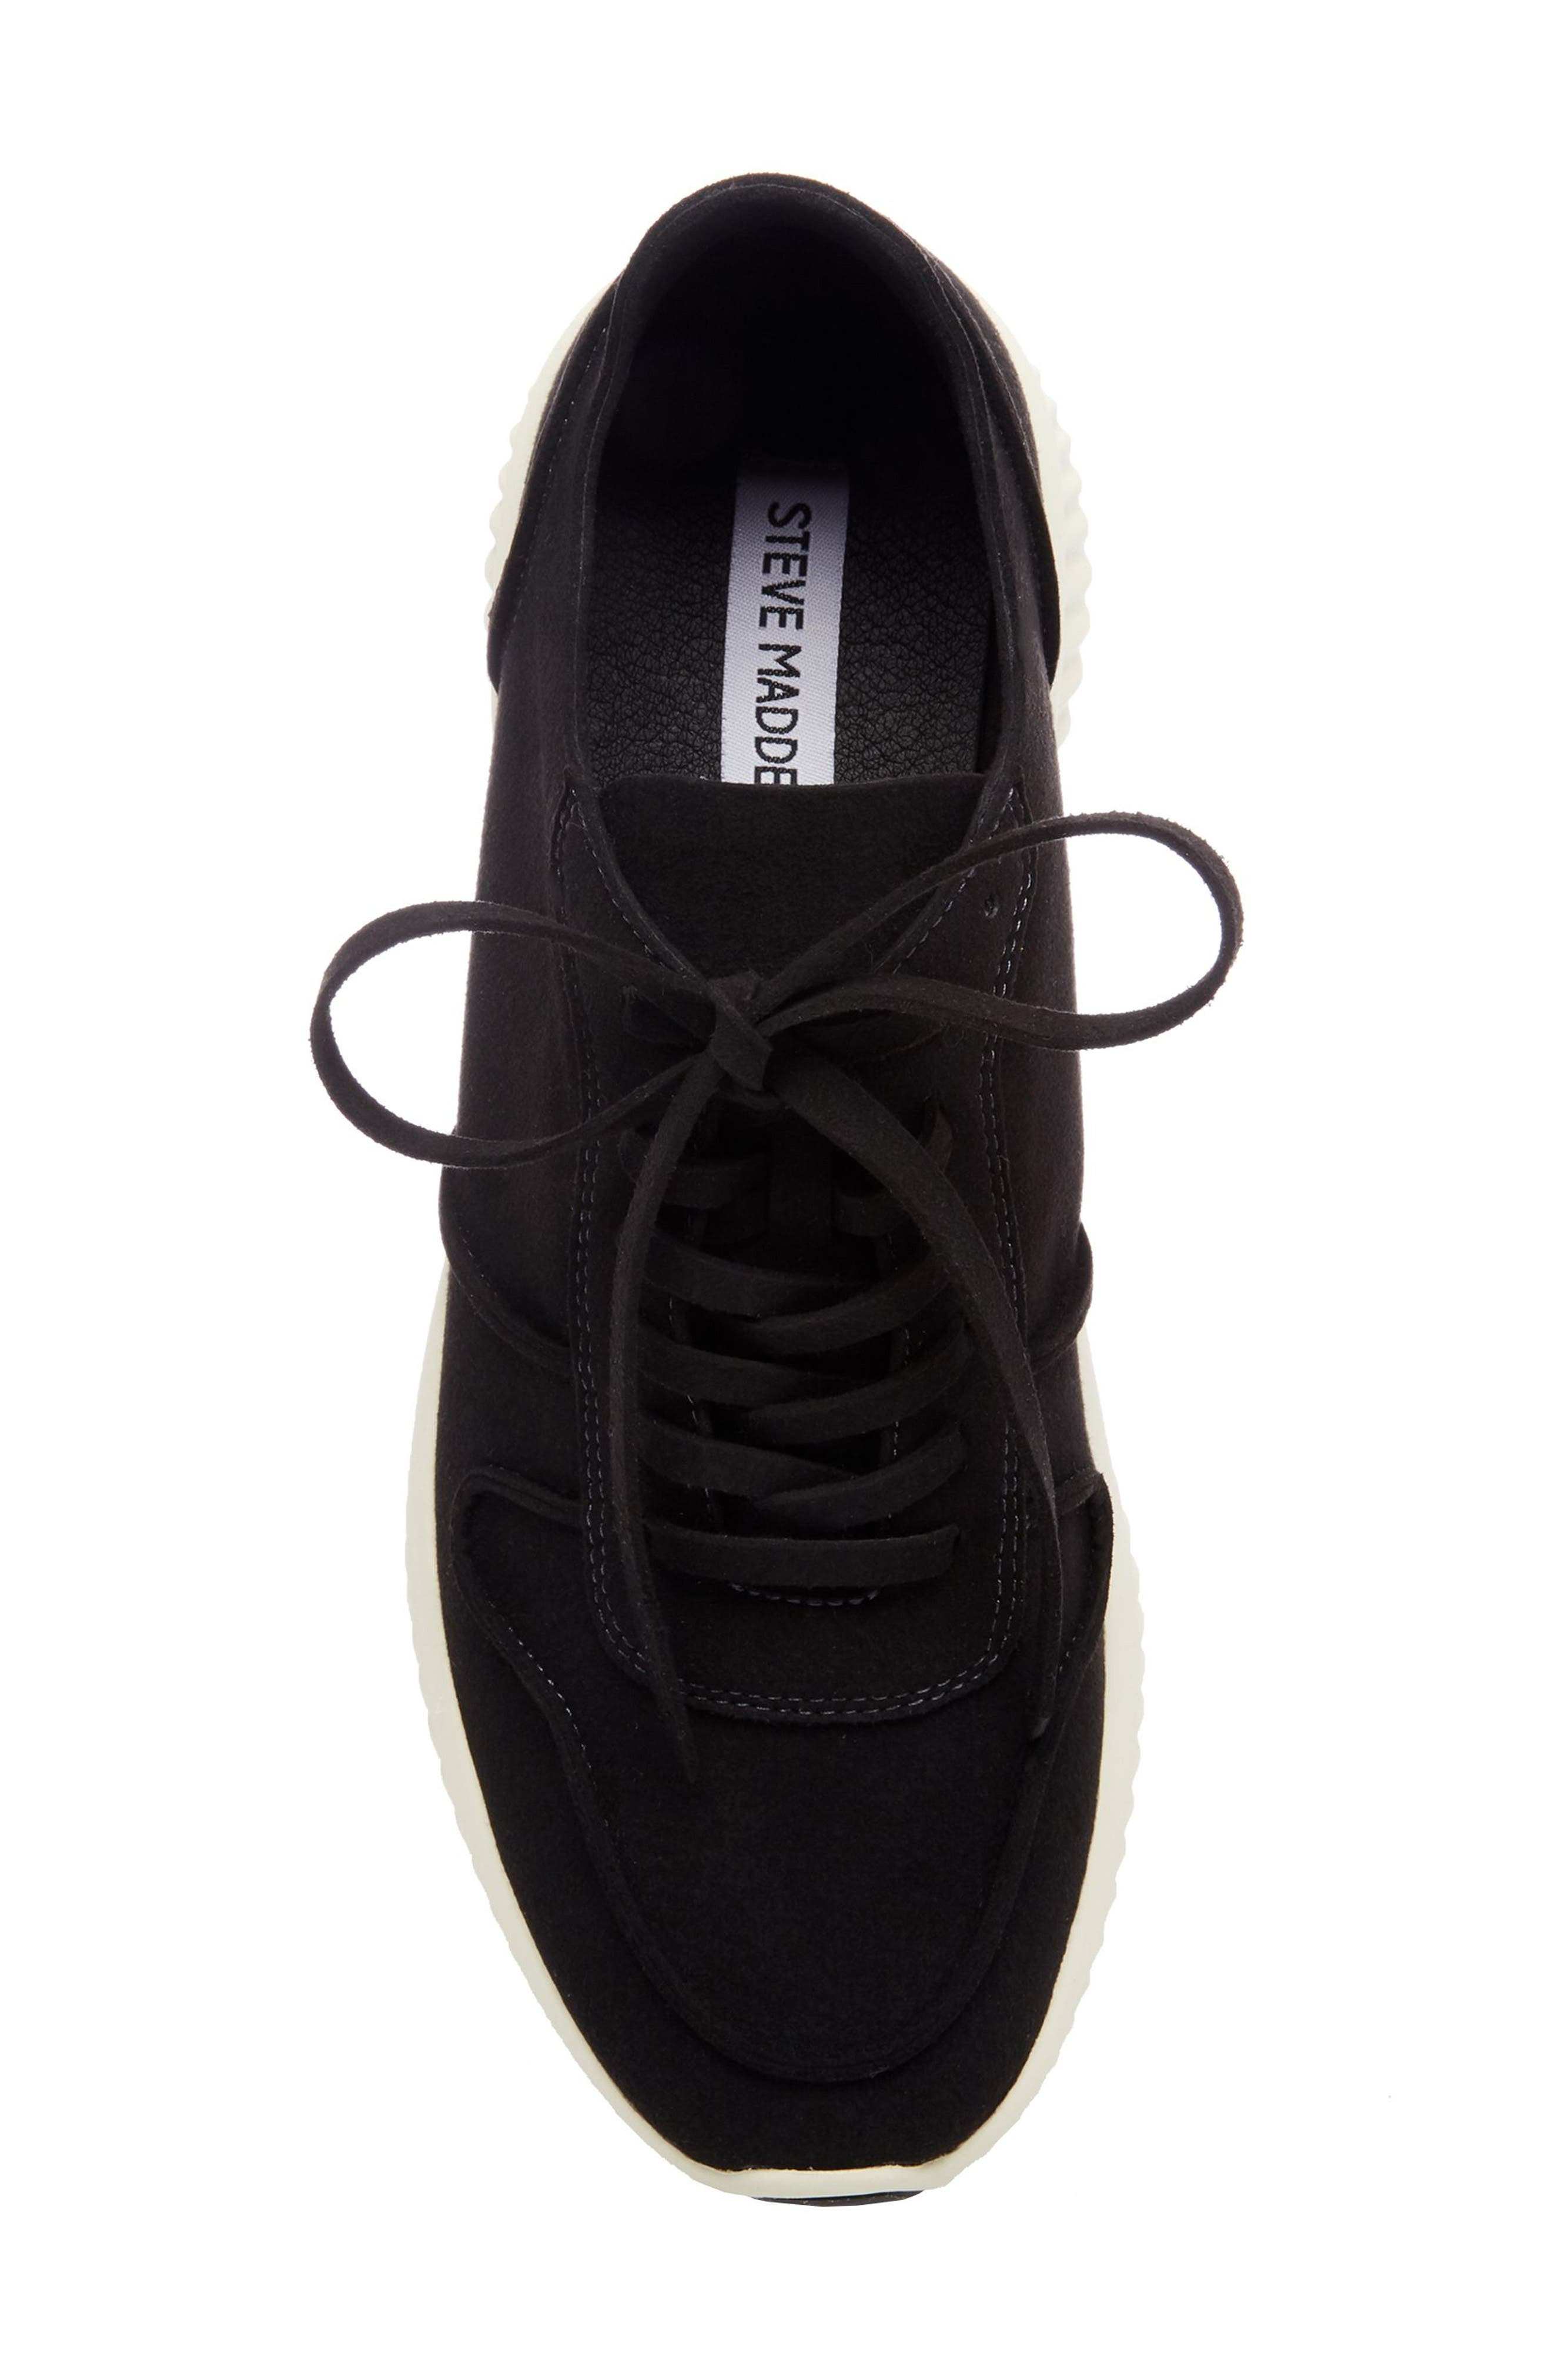 Rolf Low Top Sneaker,                             Alternate thumbnail 5, color,                             BLACK LEATHER